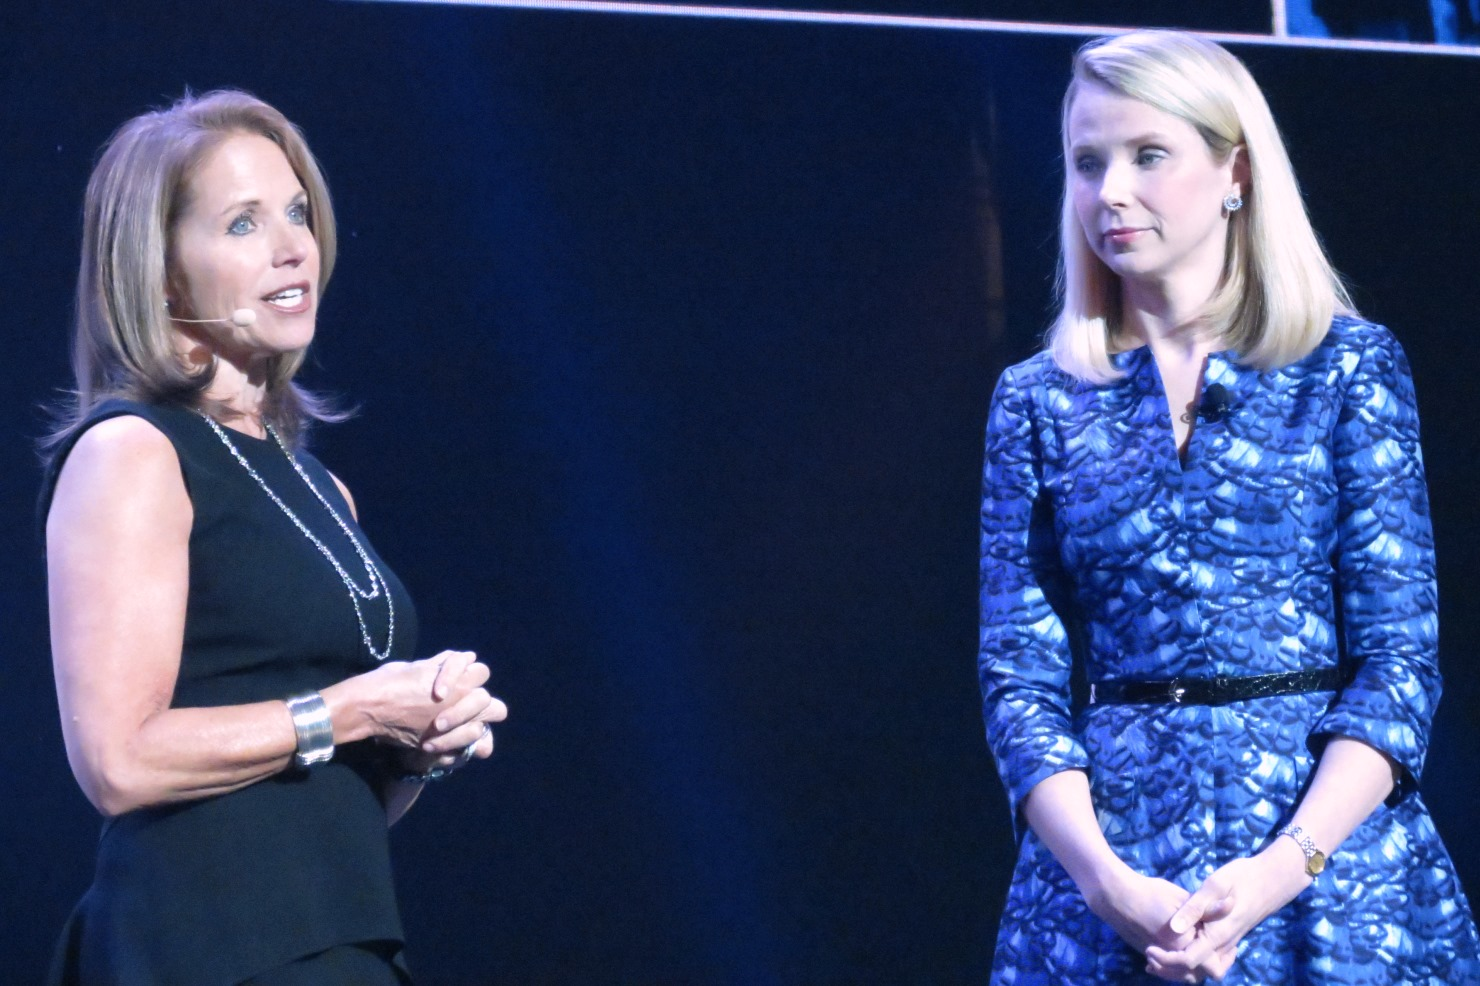 Katie Couric (l) and Marissa Mayer (r) at CES 2014 (photo by Joao-Pierre S. Ruth)